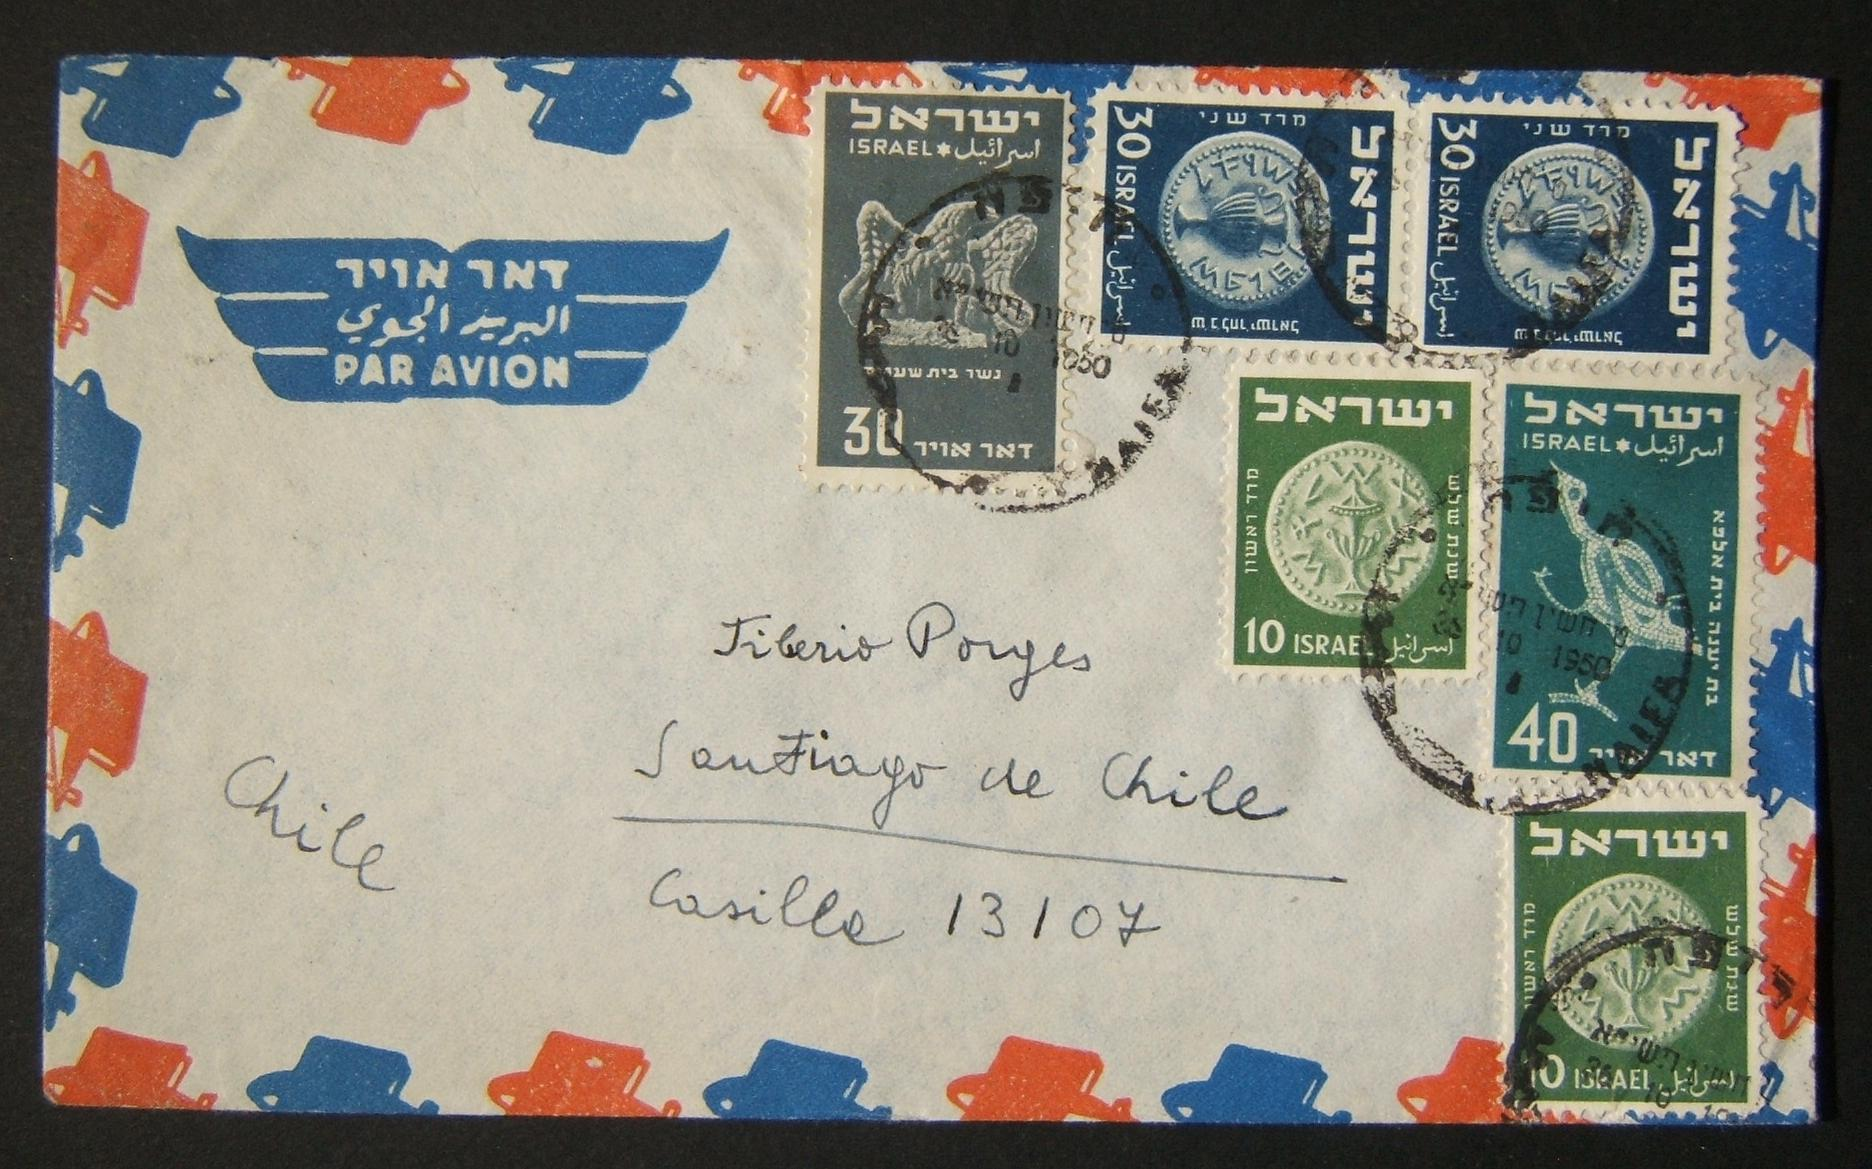 10/1950 airmail to CHILE using 1st Airmail & 2nd Coinage stamps; postmark error